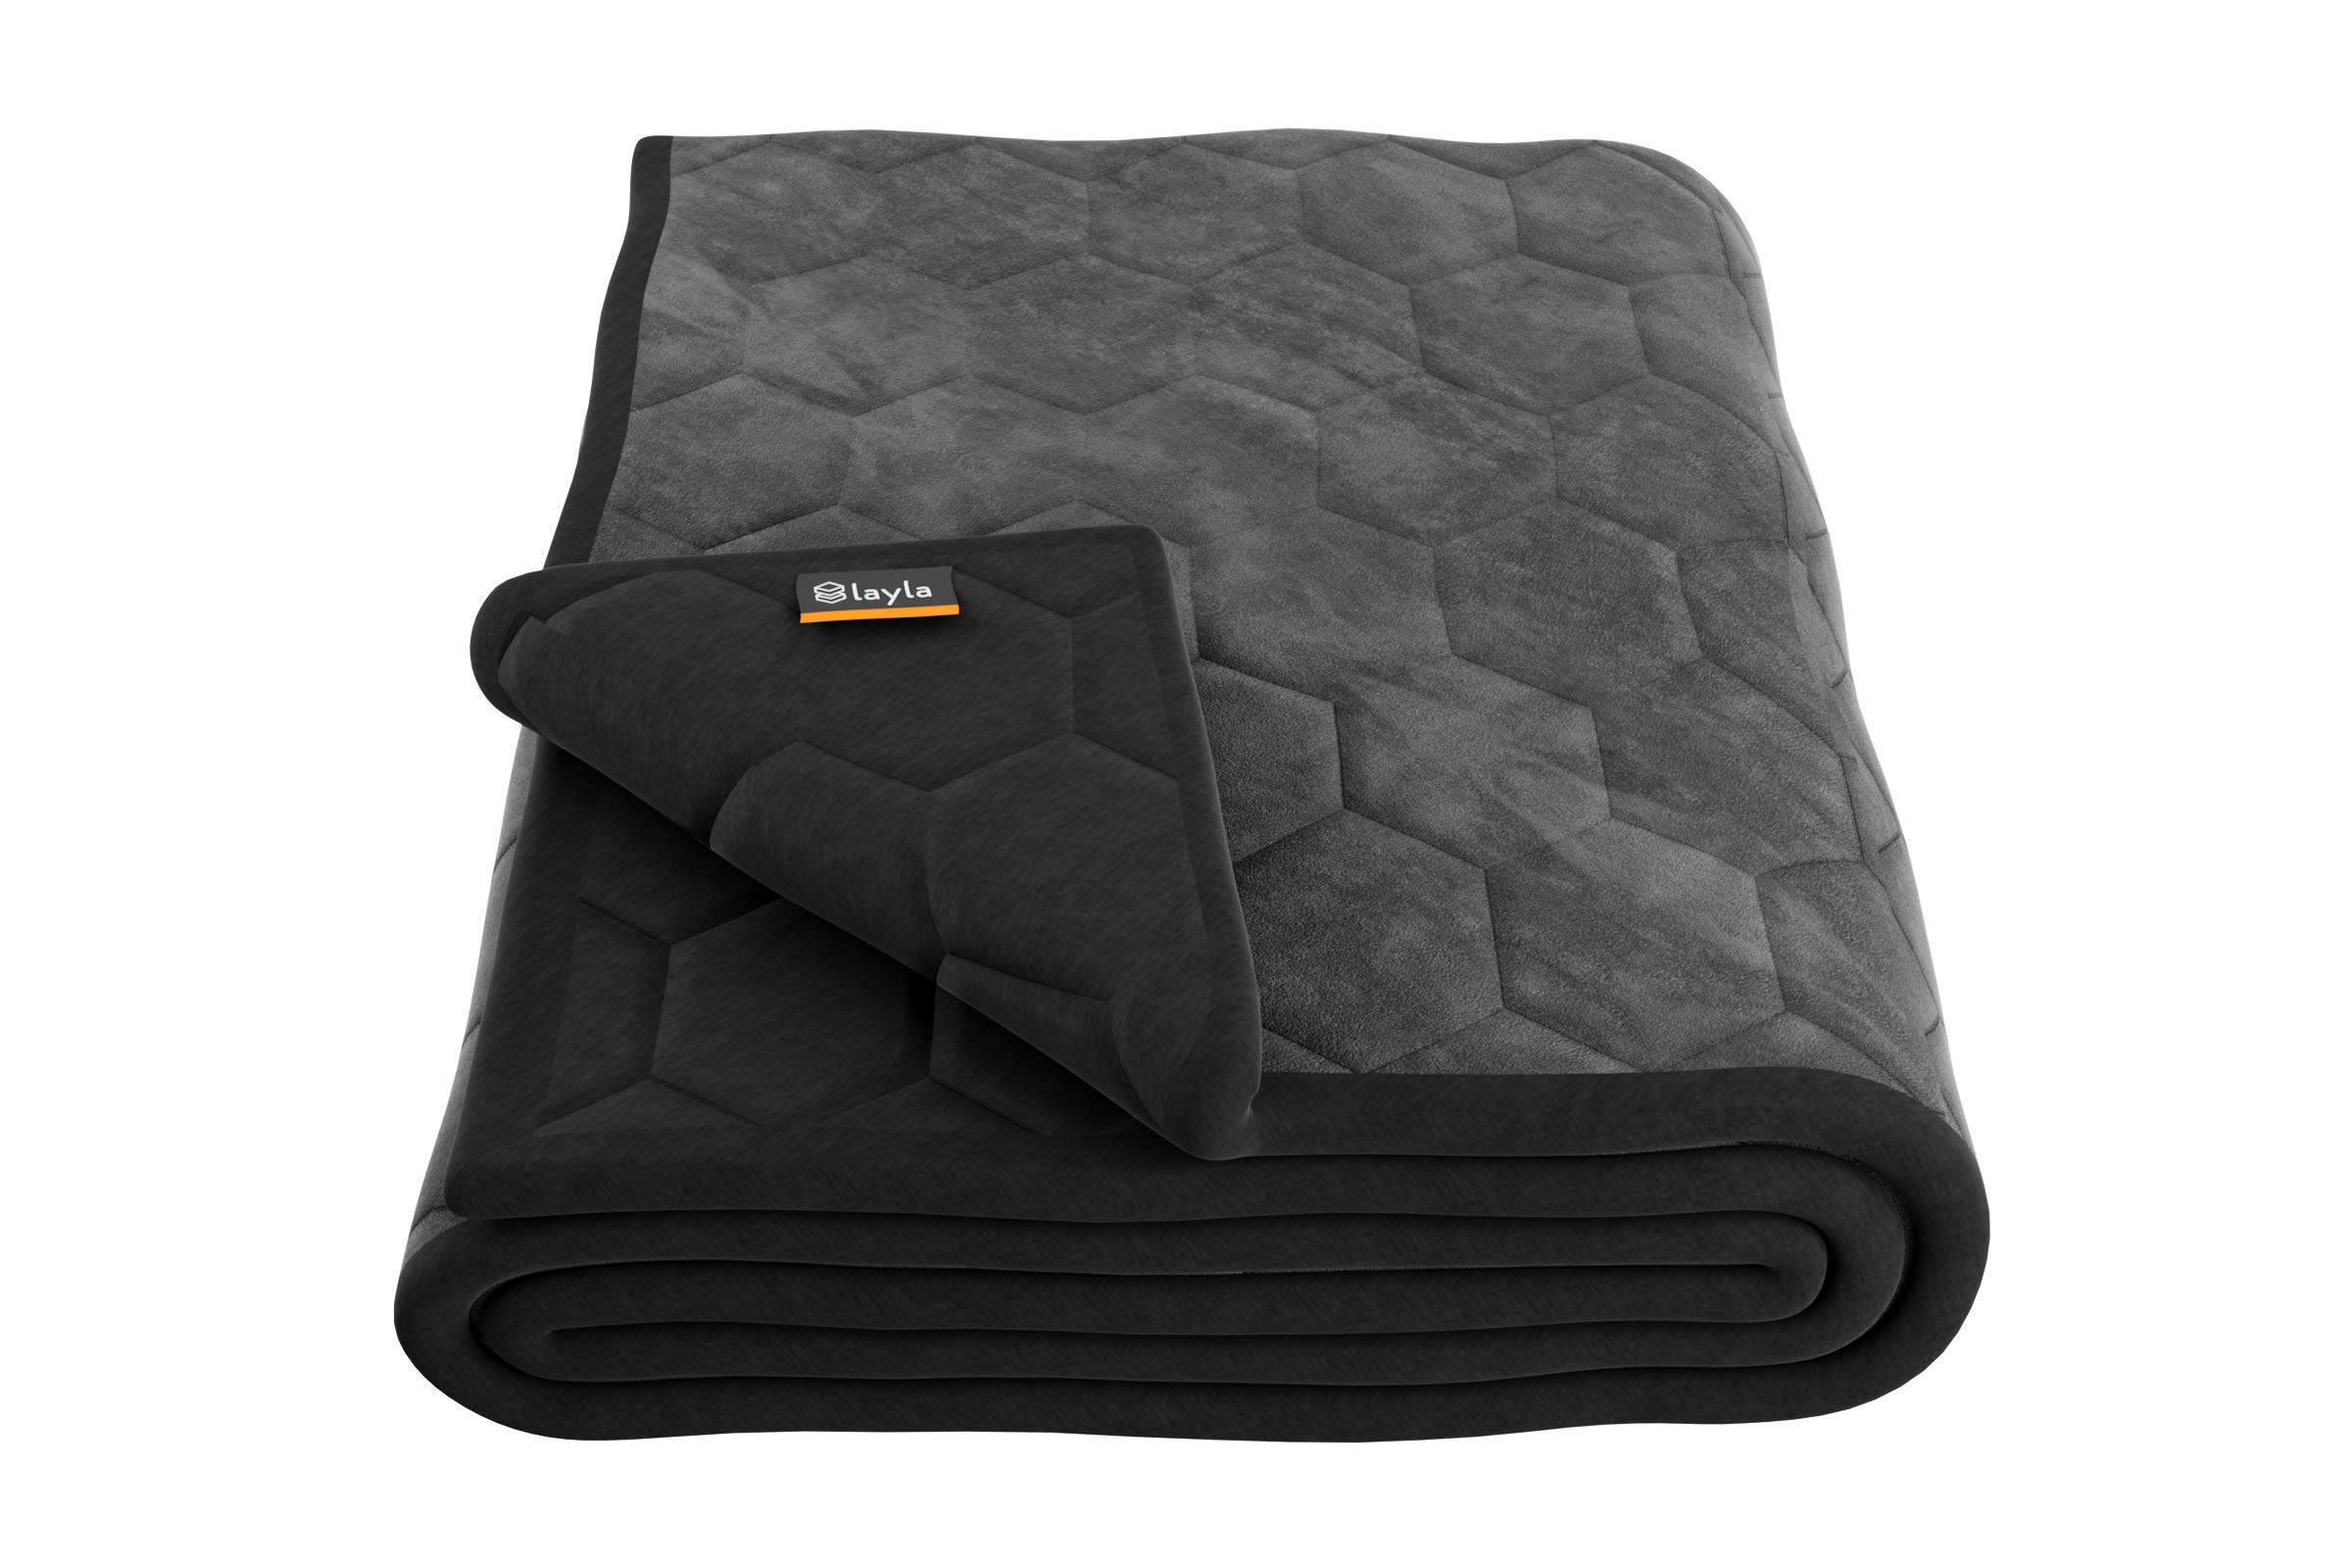 Layla Weighted Blanket with Fleecy Top Layer and 300 Thread-Count 100% Cotton Bottom Layer (King)